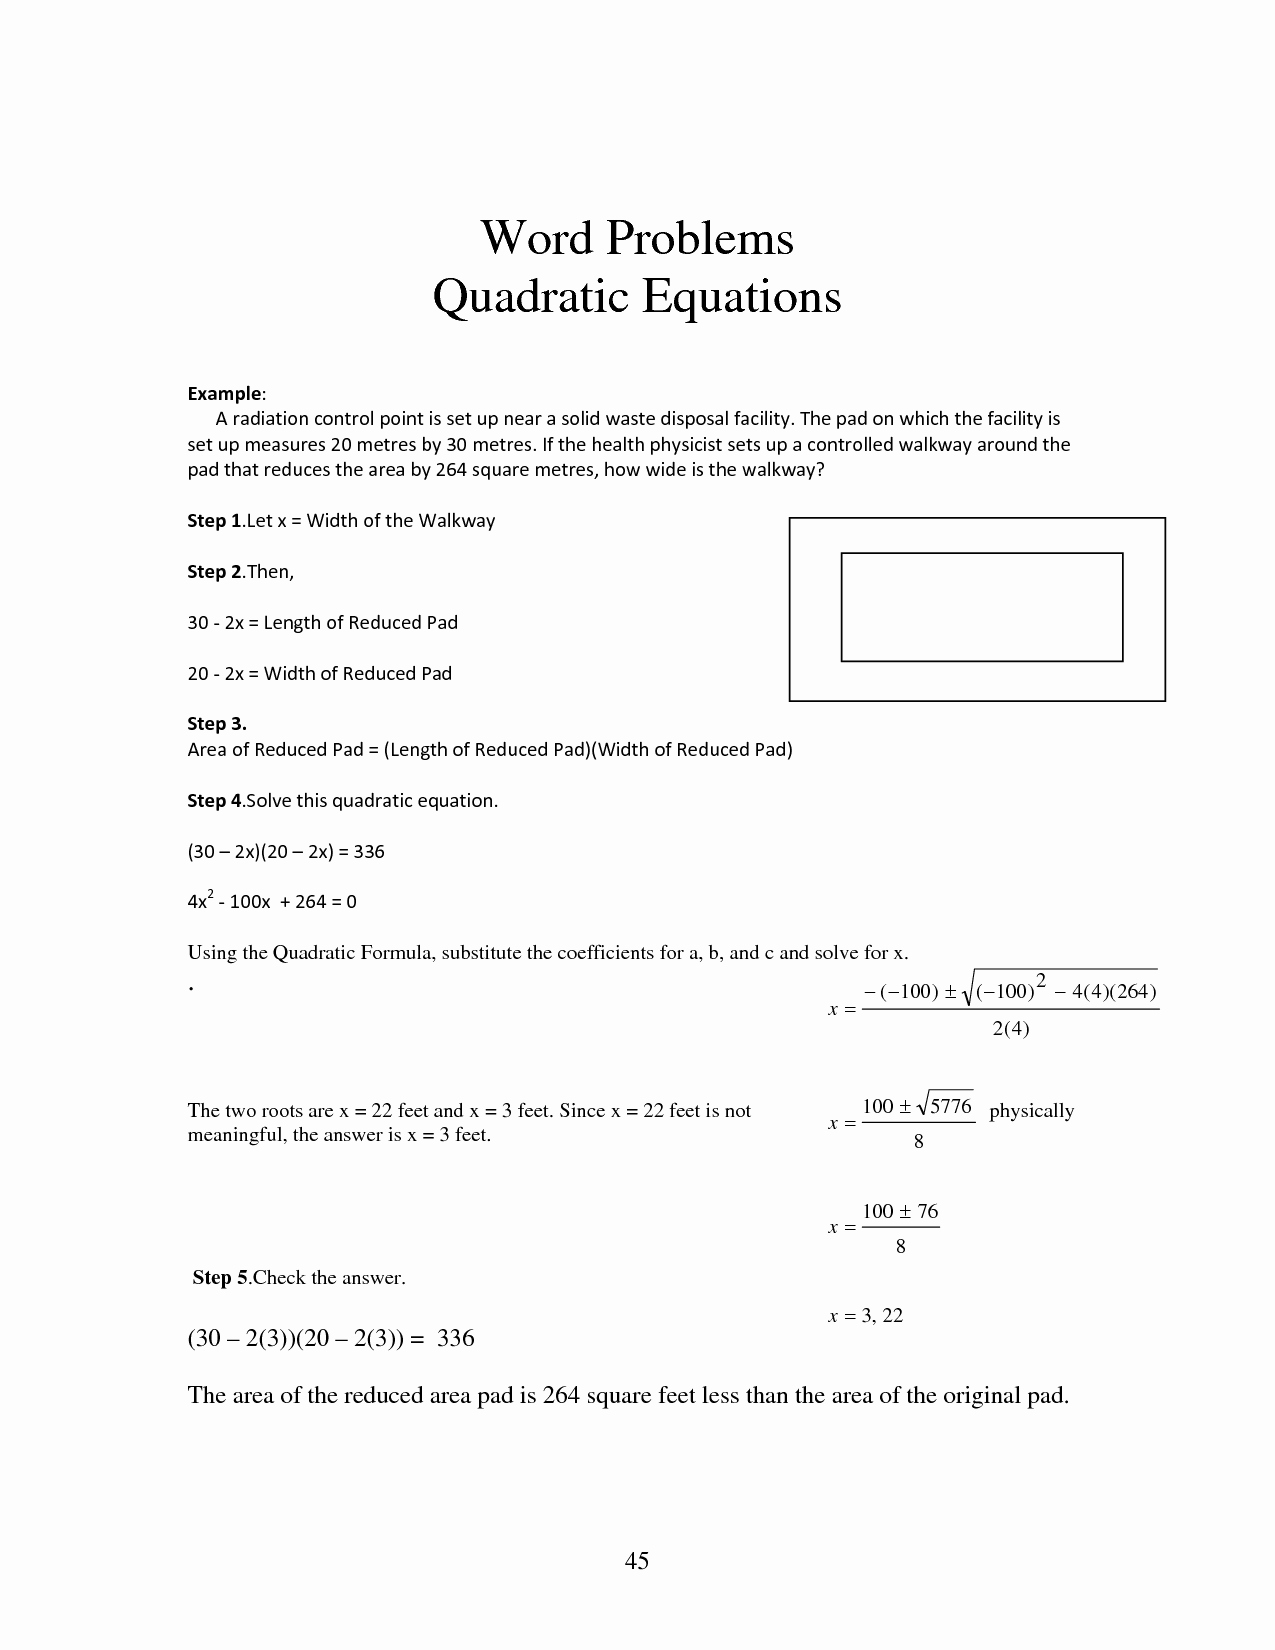 The Quadratic formula Worksheet Elegant Quadratic Equation Word Problems Worksheet